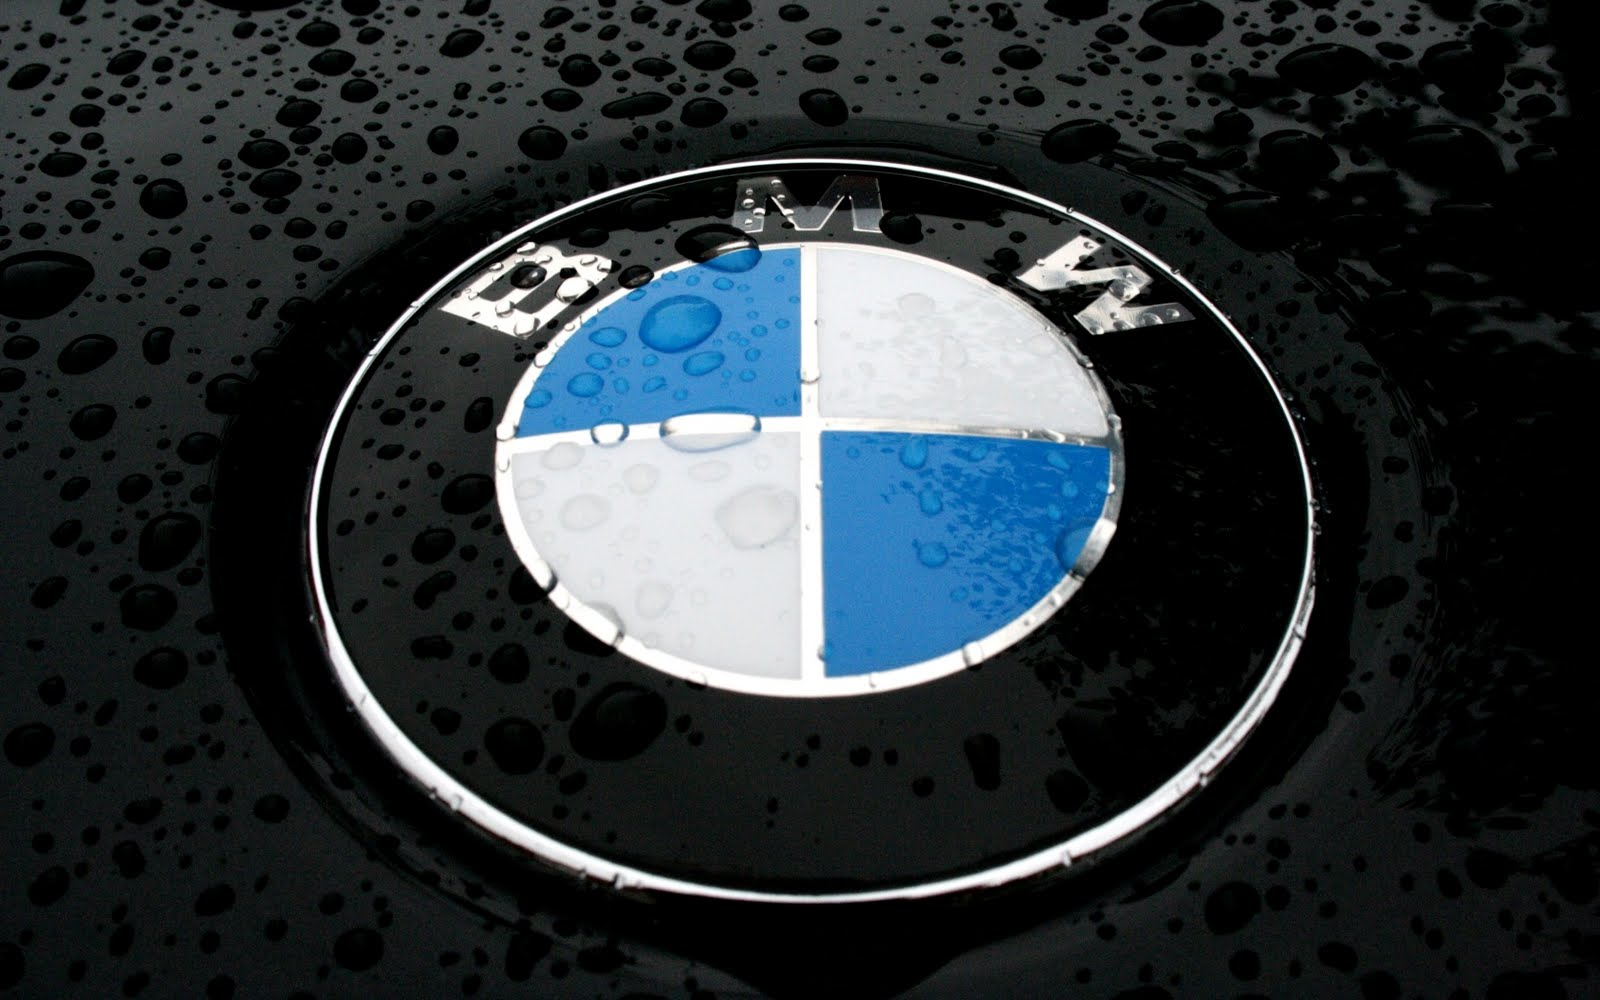 Bmw logo at the car body